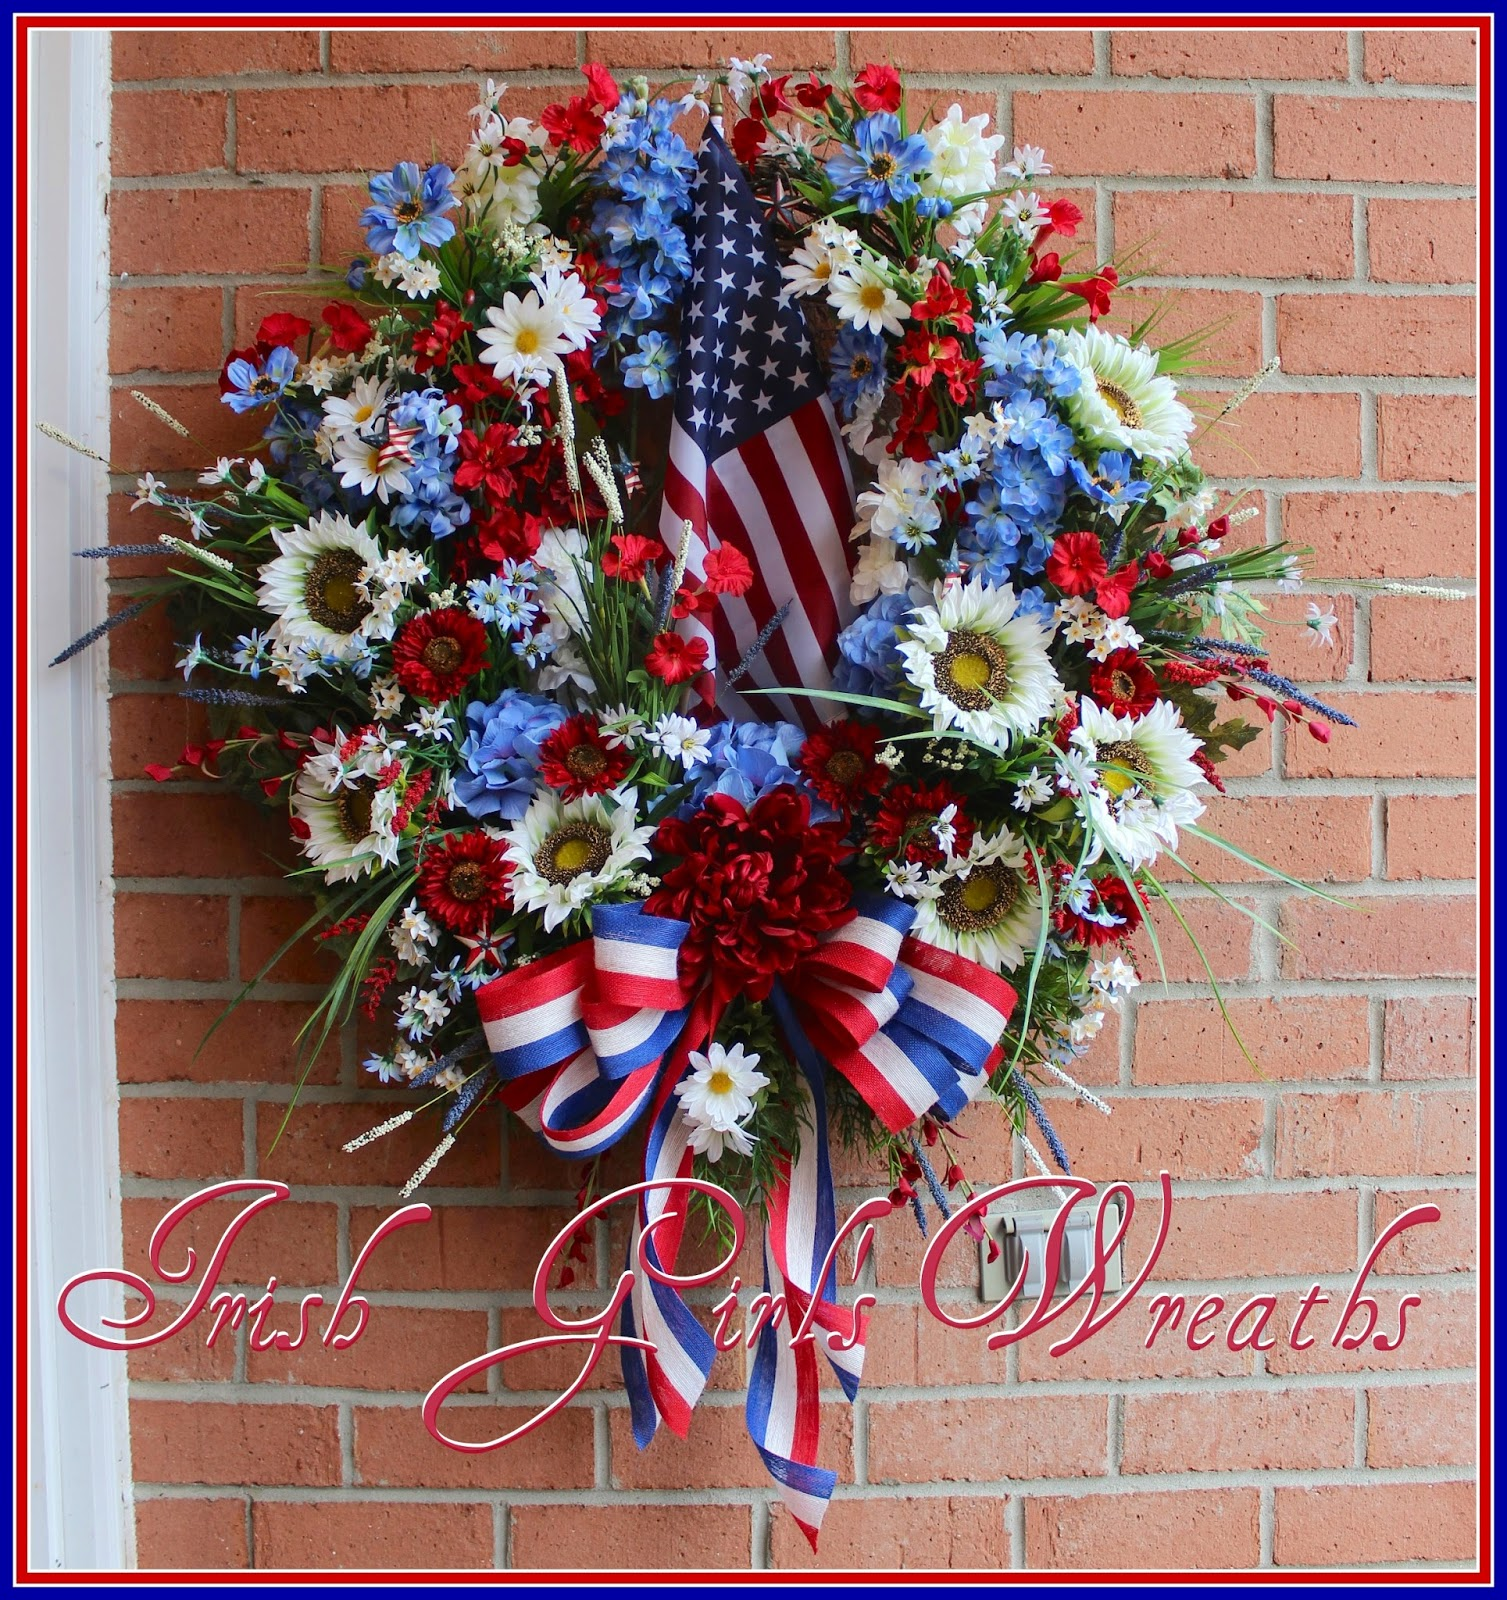 Custom Order XX-Large Patriotic White Sunflower Wreath, Memorial Day, 4th of July, Military Family Support, Veteran's Day